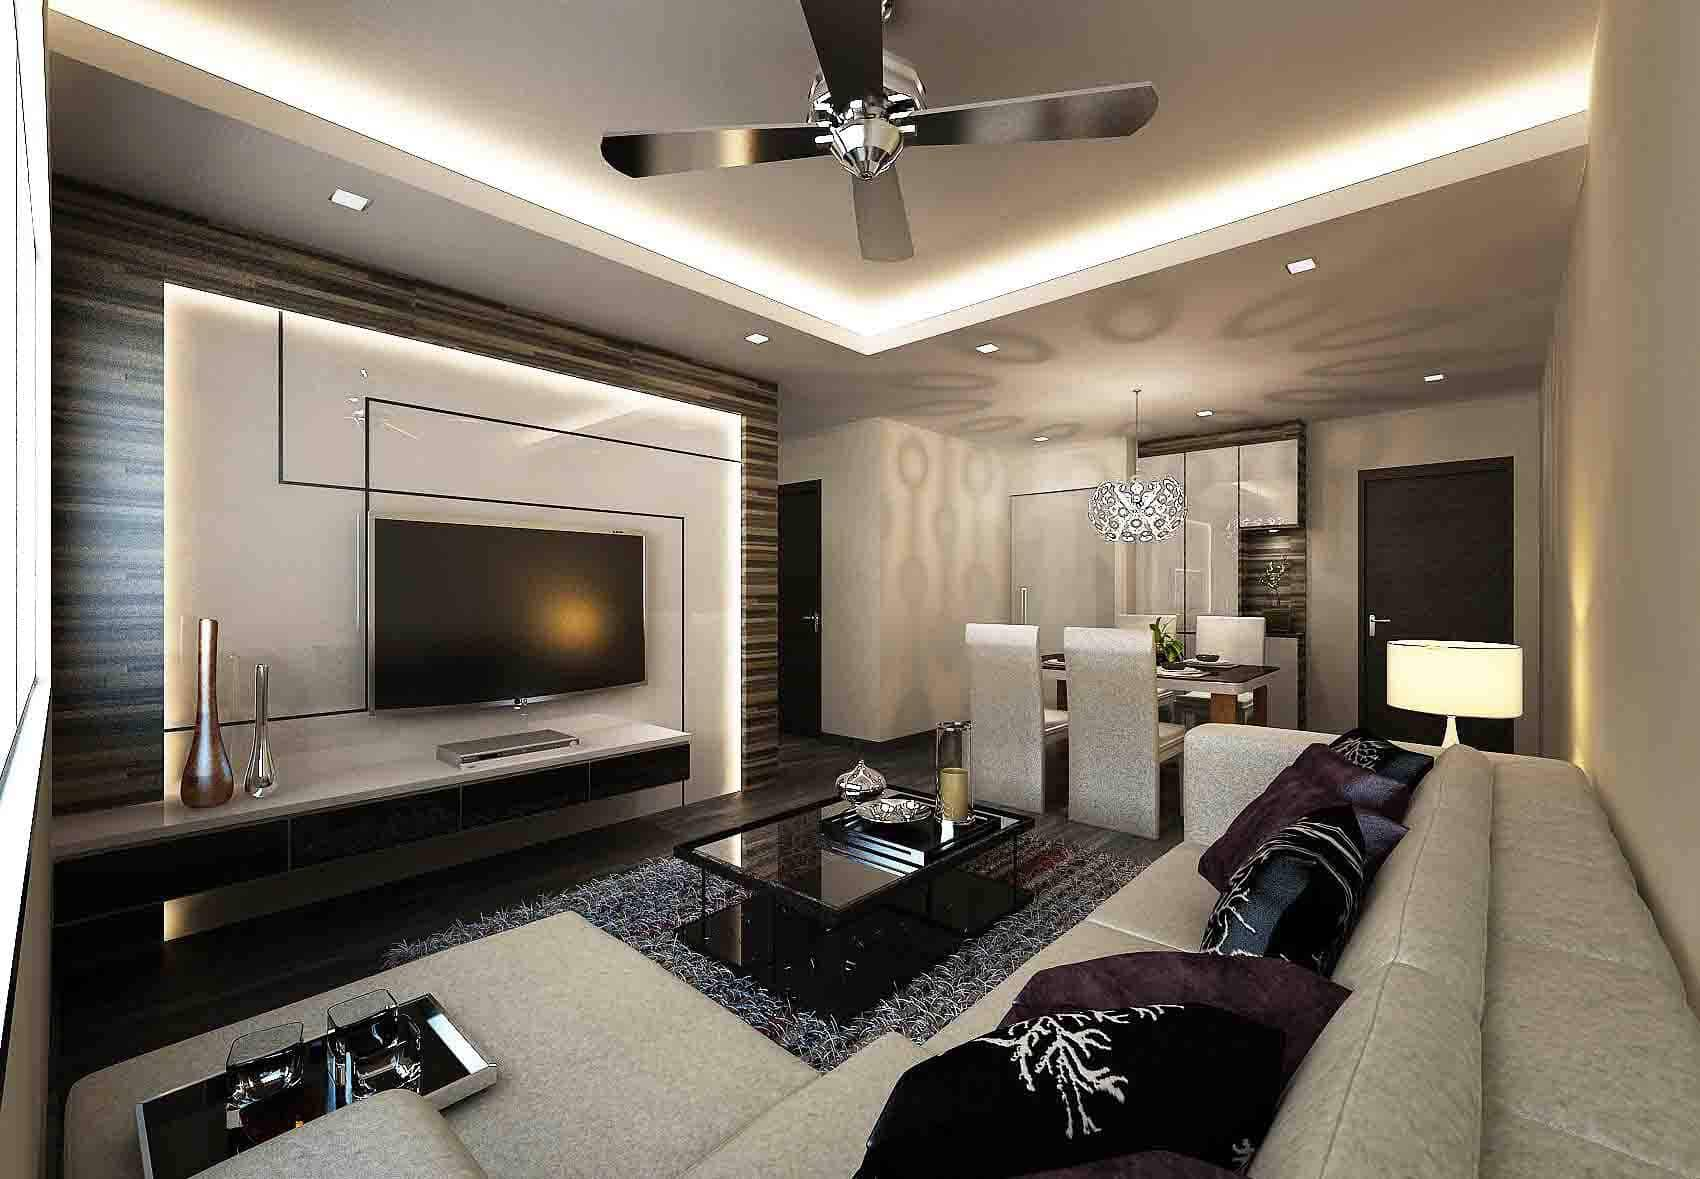 5 elements of a successful living room concept juz interior - Decor and interior living room design ...